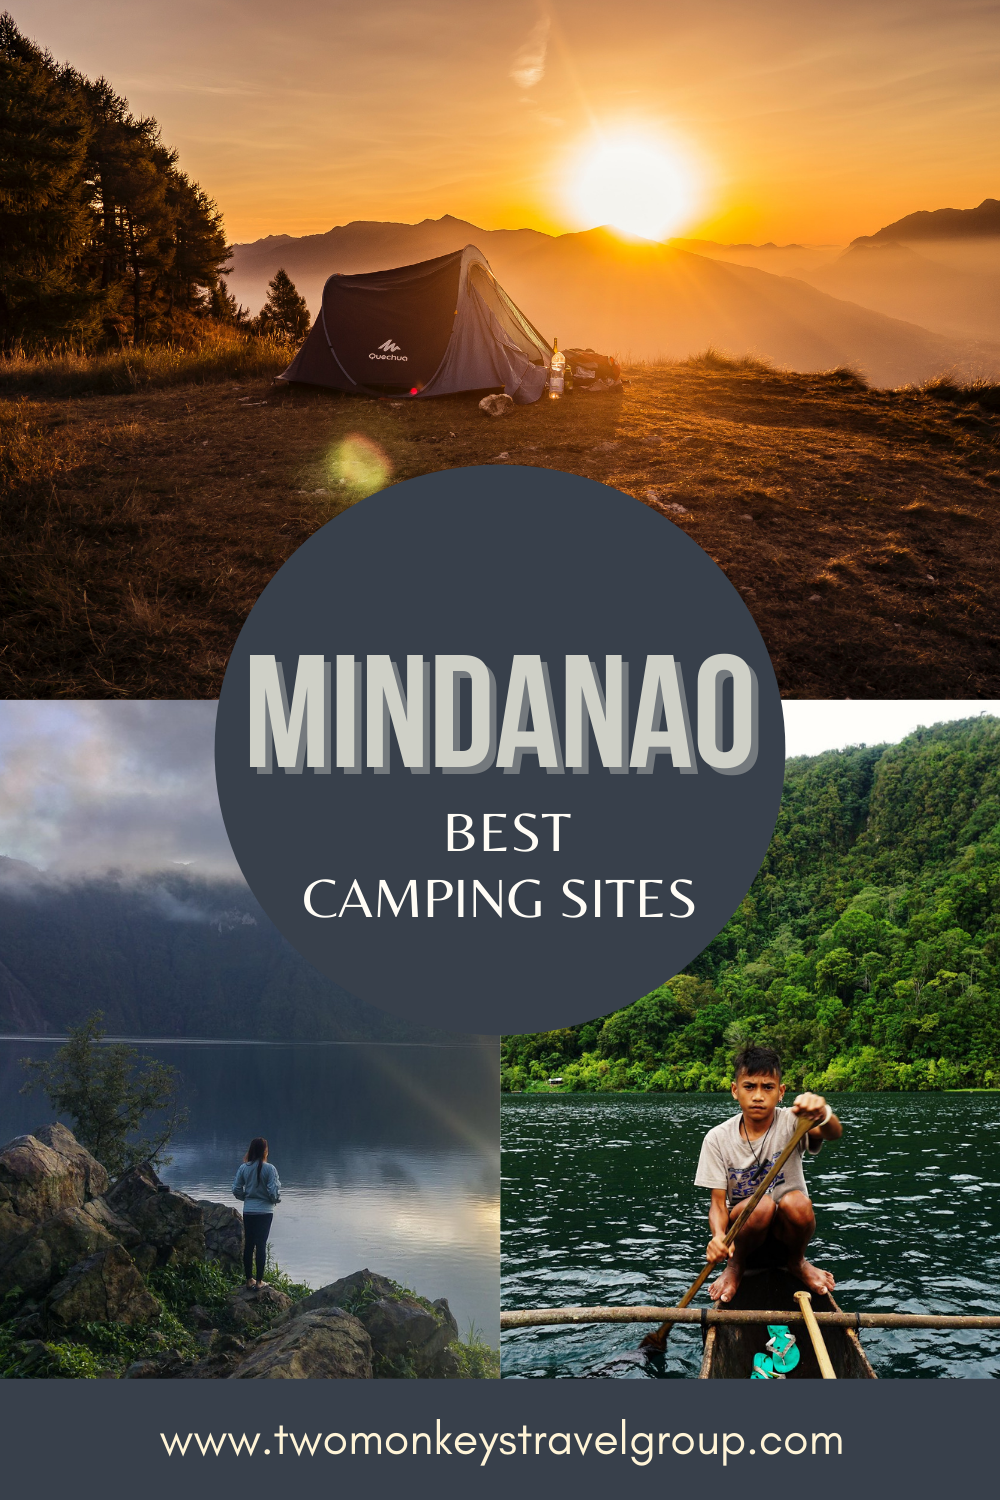 MINDANAO Camping Best Camping Sites in Mindanao [With Rates Available]